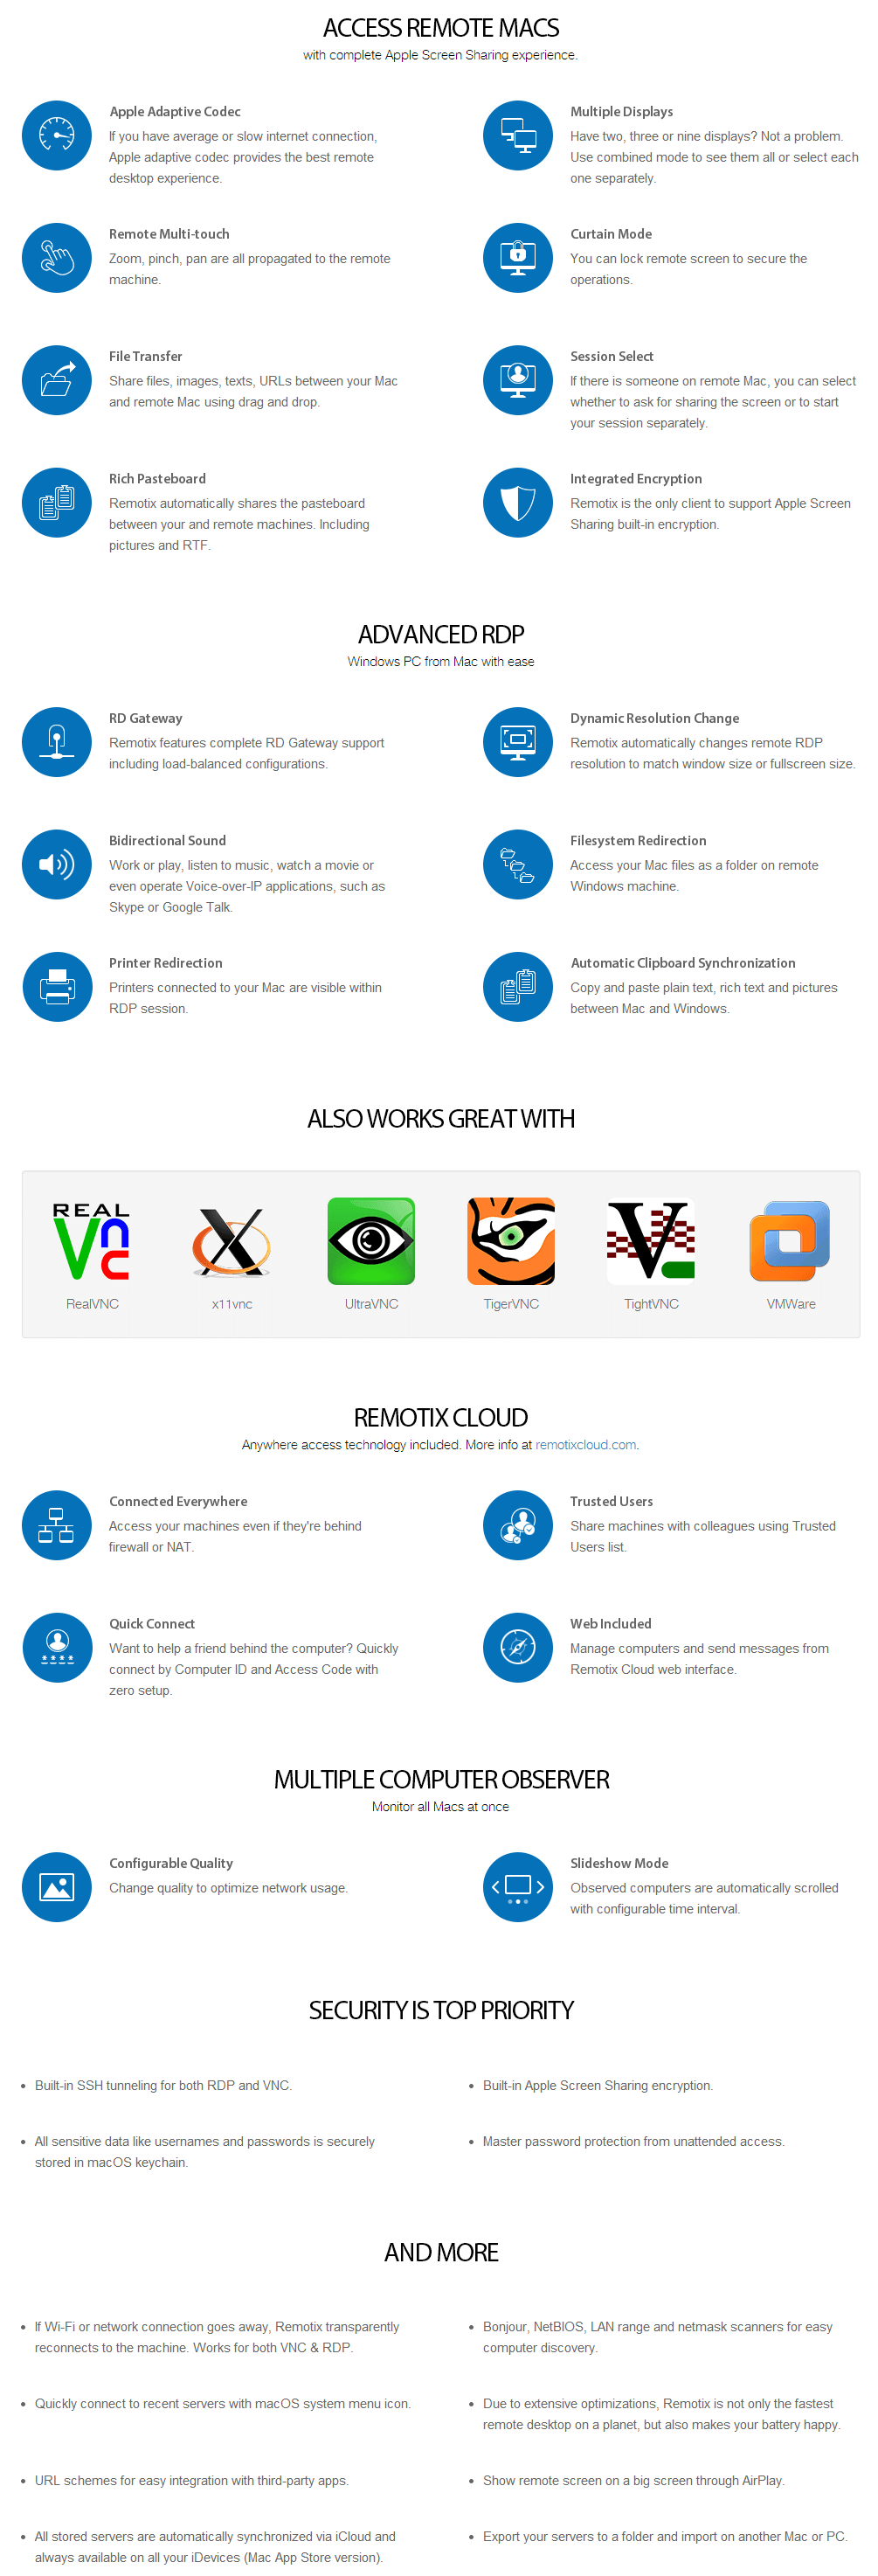 Remotix for Mac 4 key Features